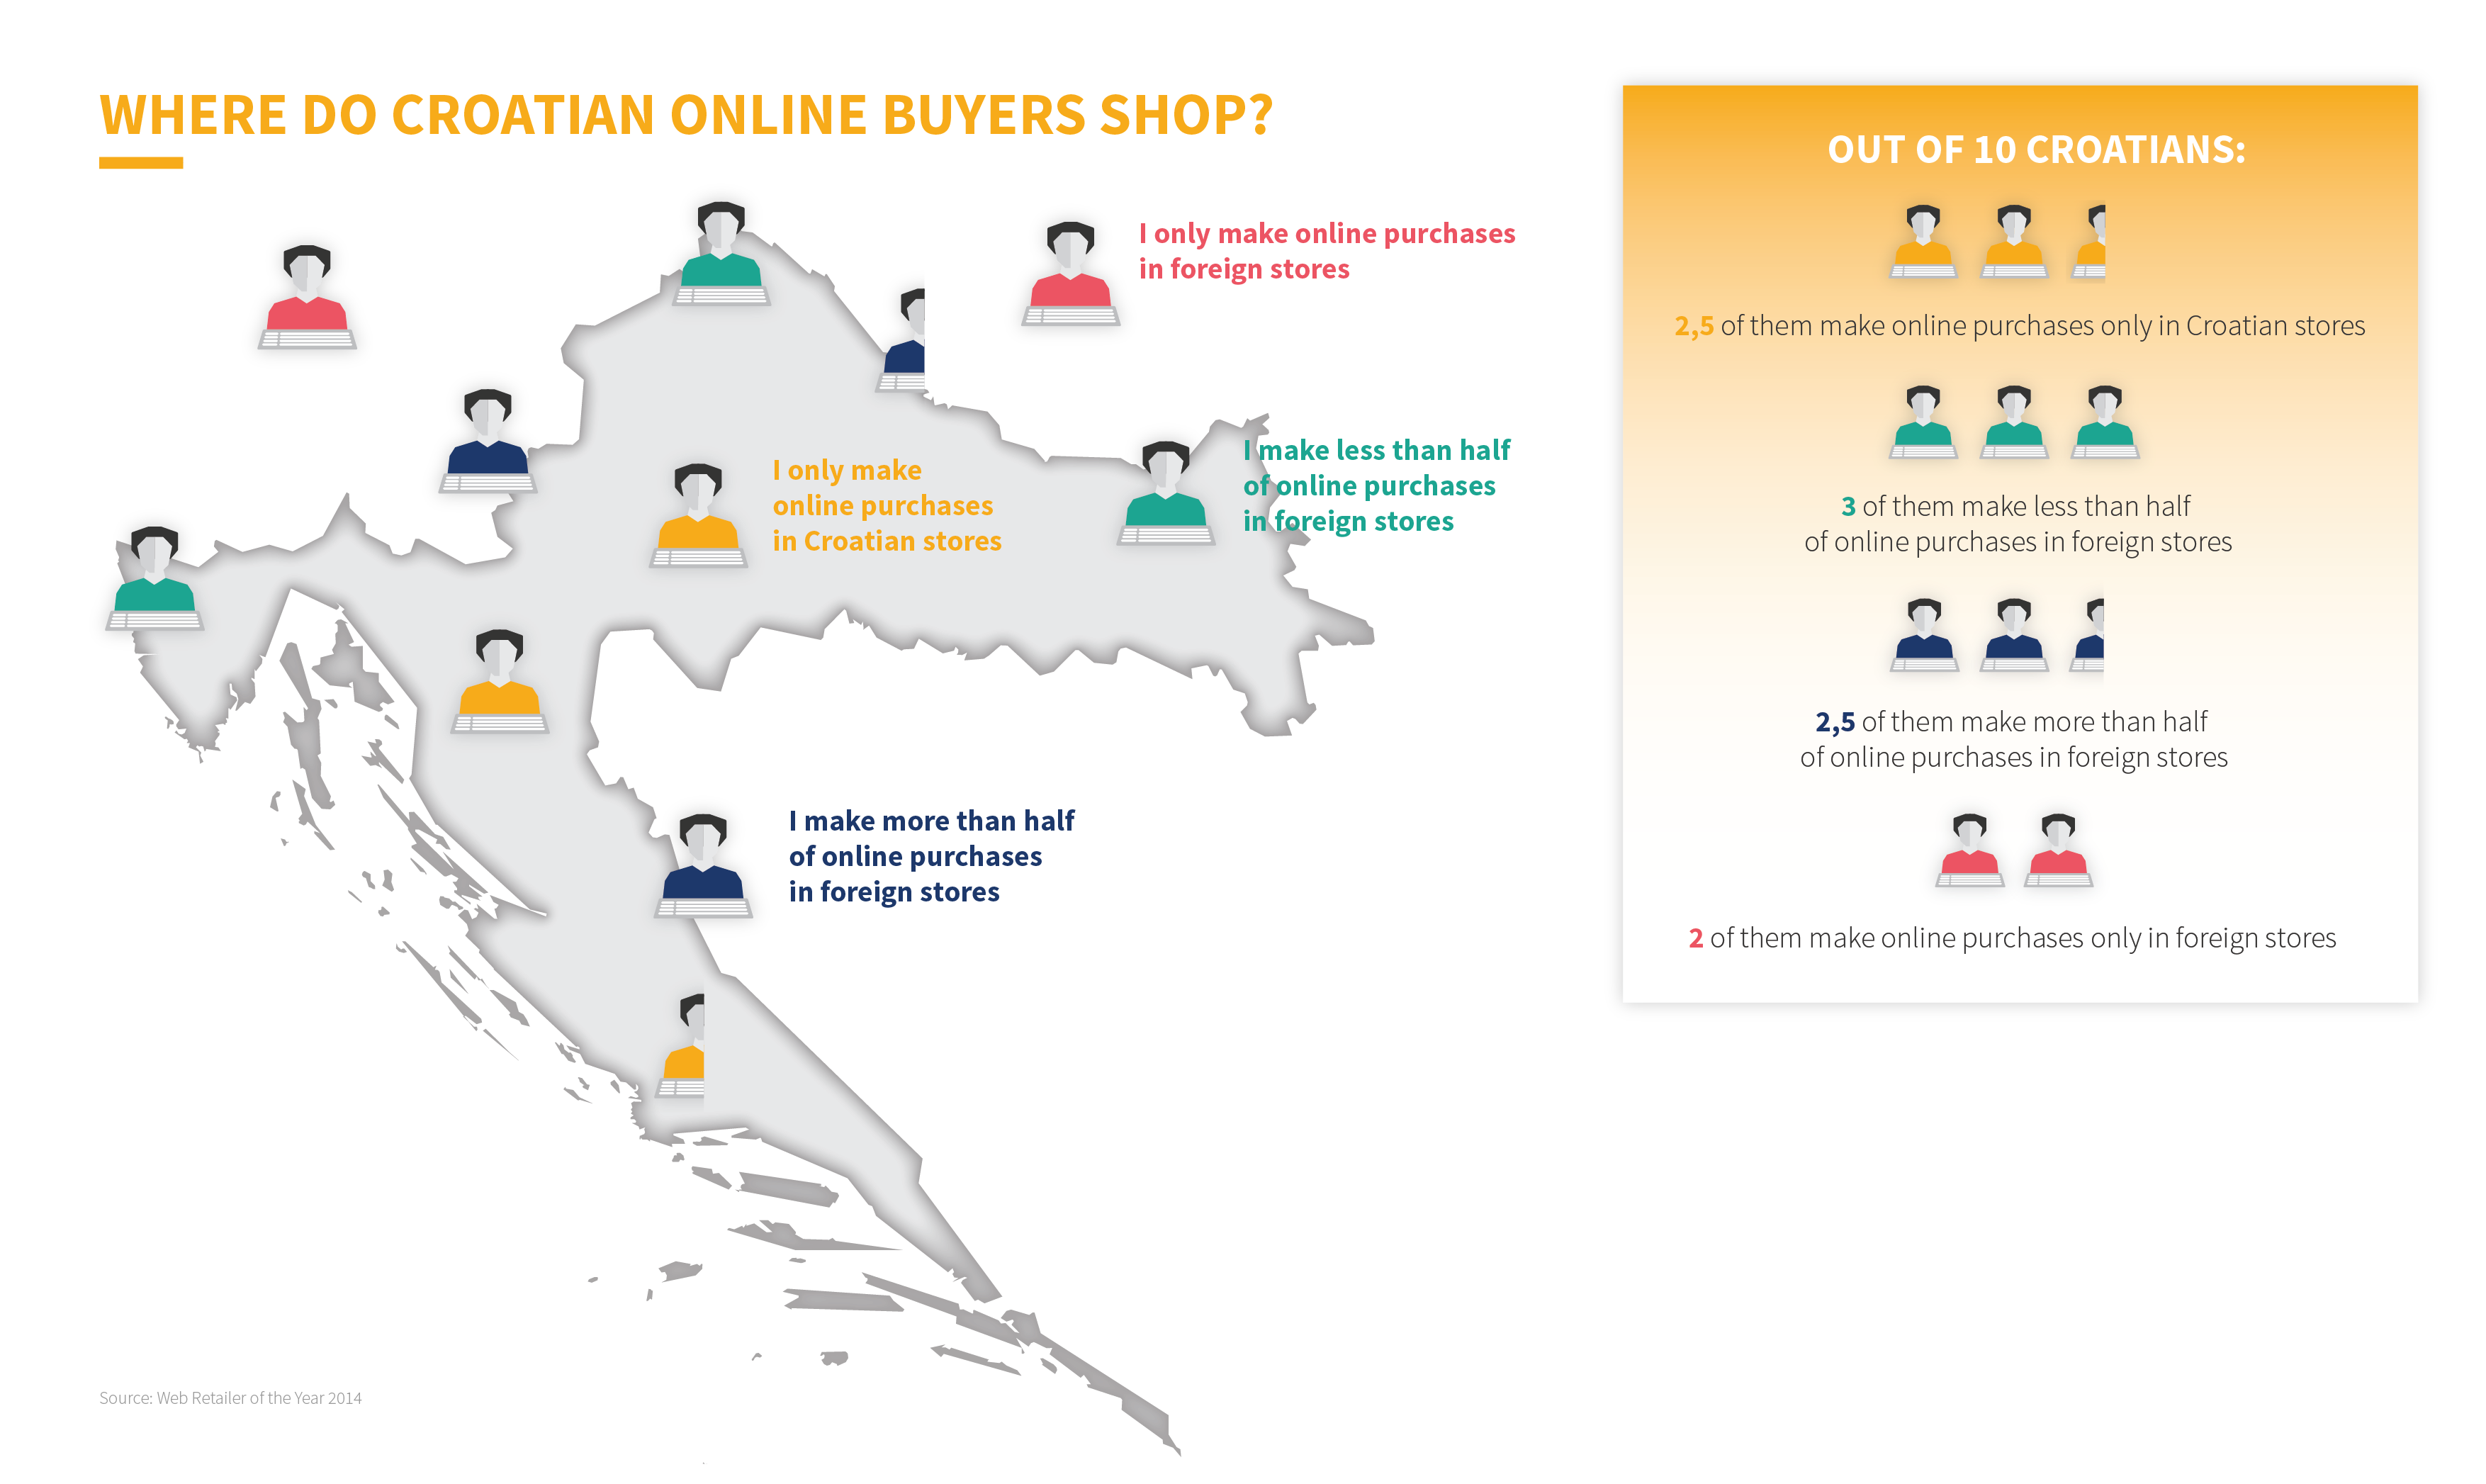 Online shoppers in Croatia